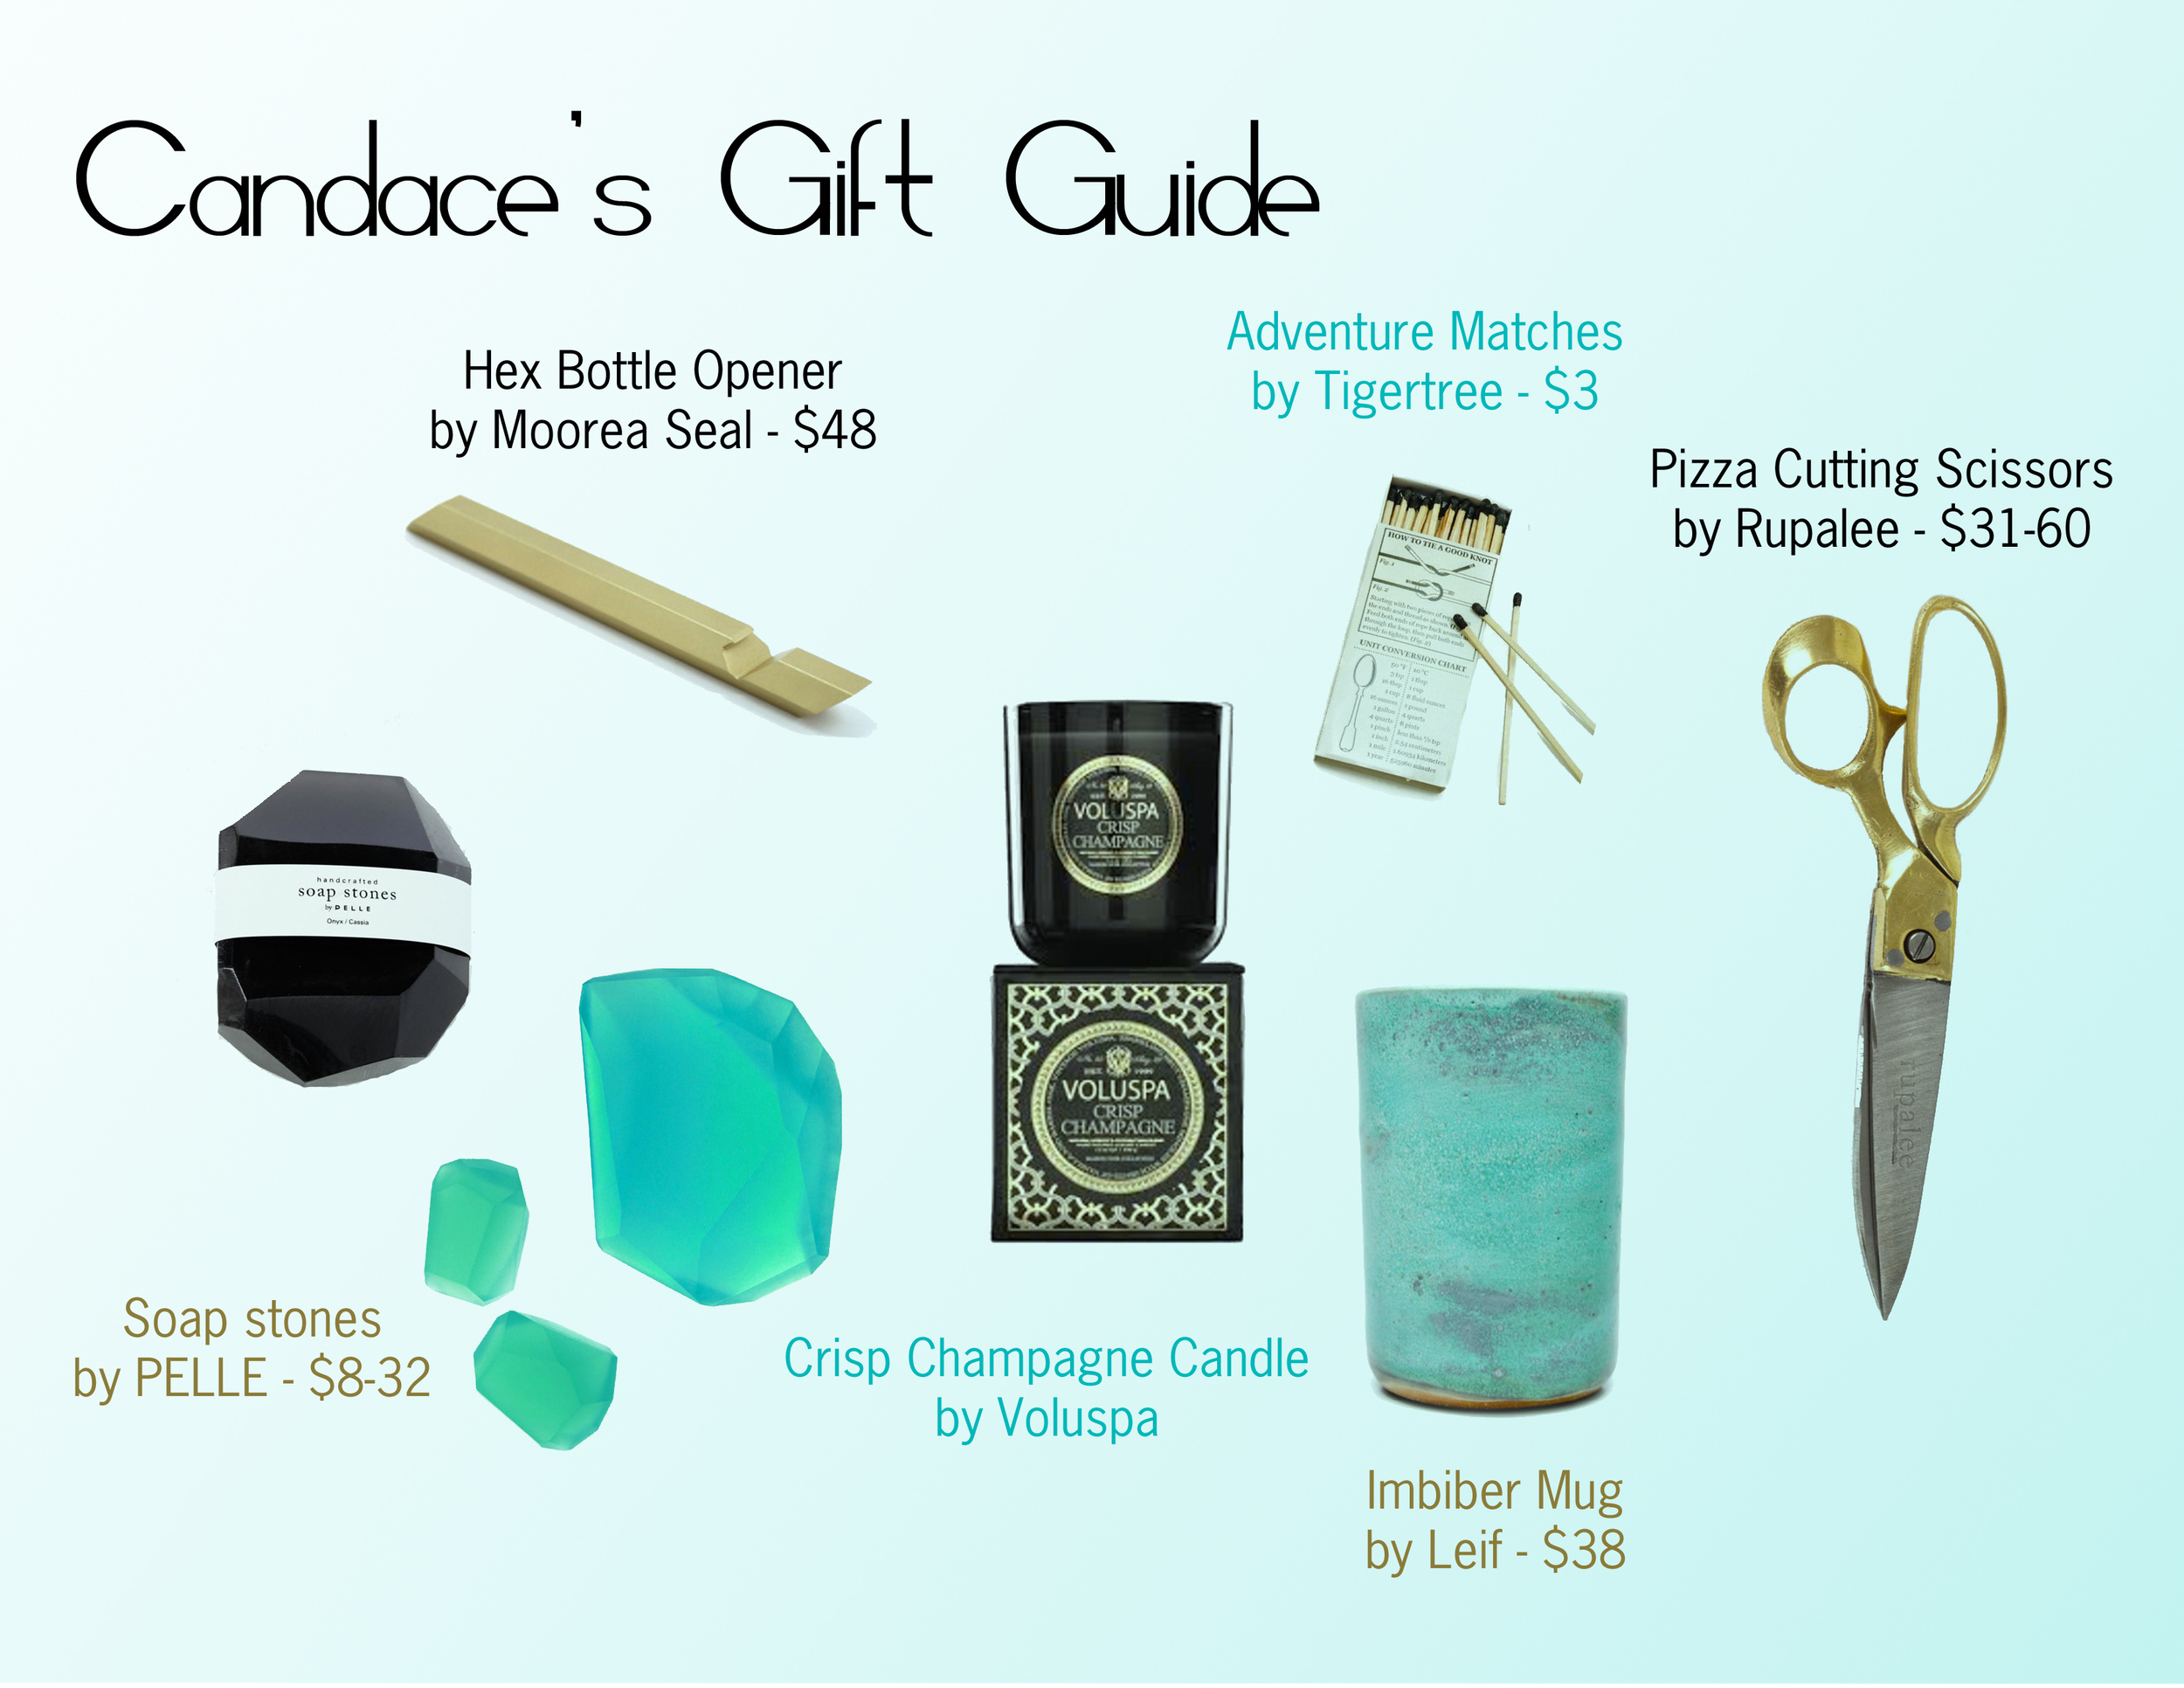 designer gift guide, holiday gift guide, candles and soap